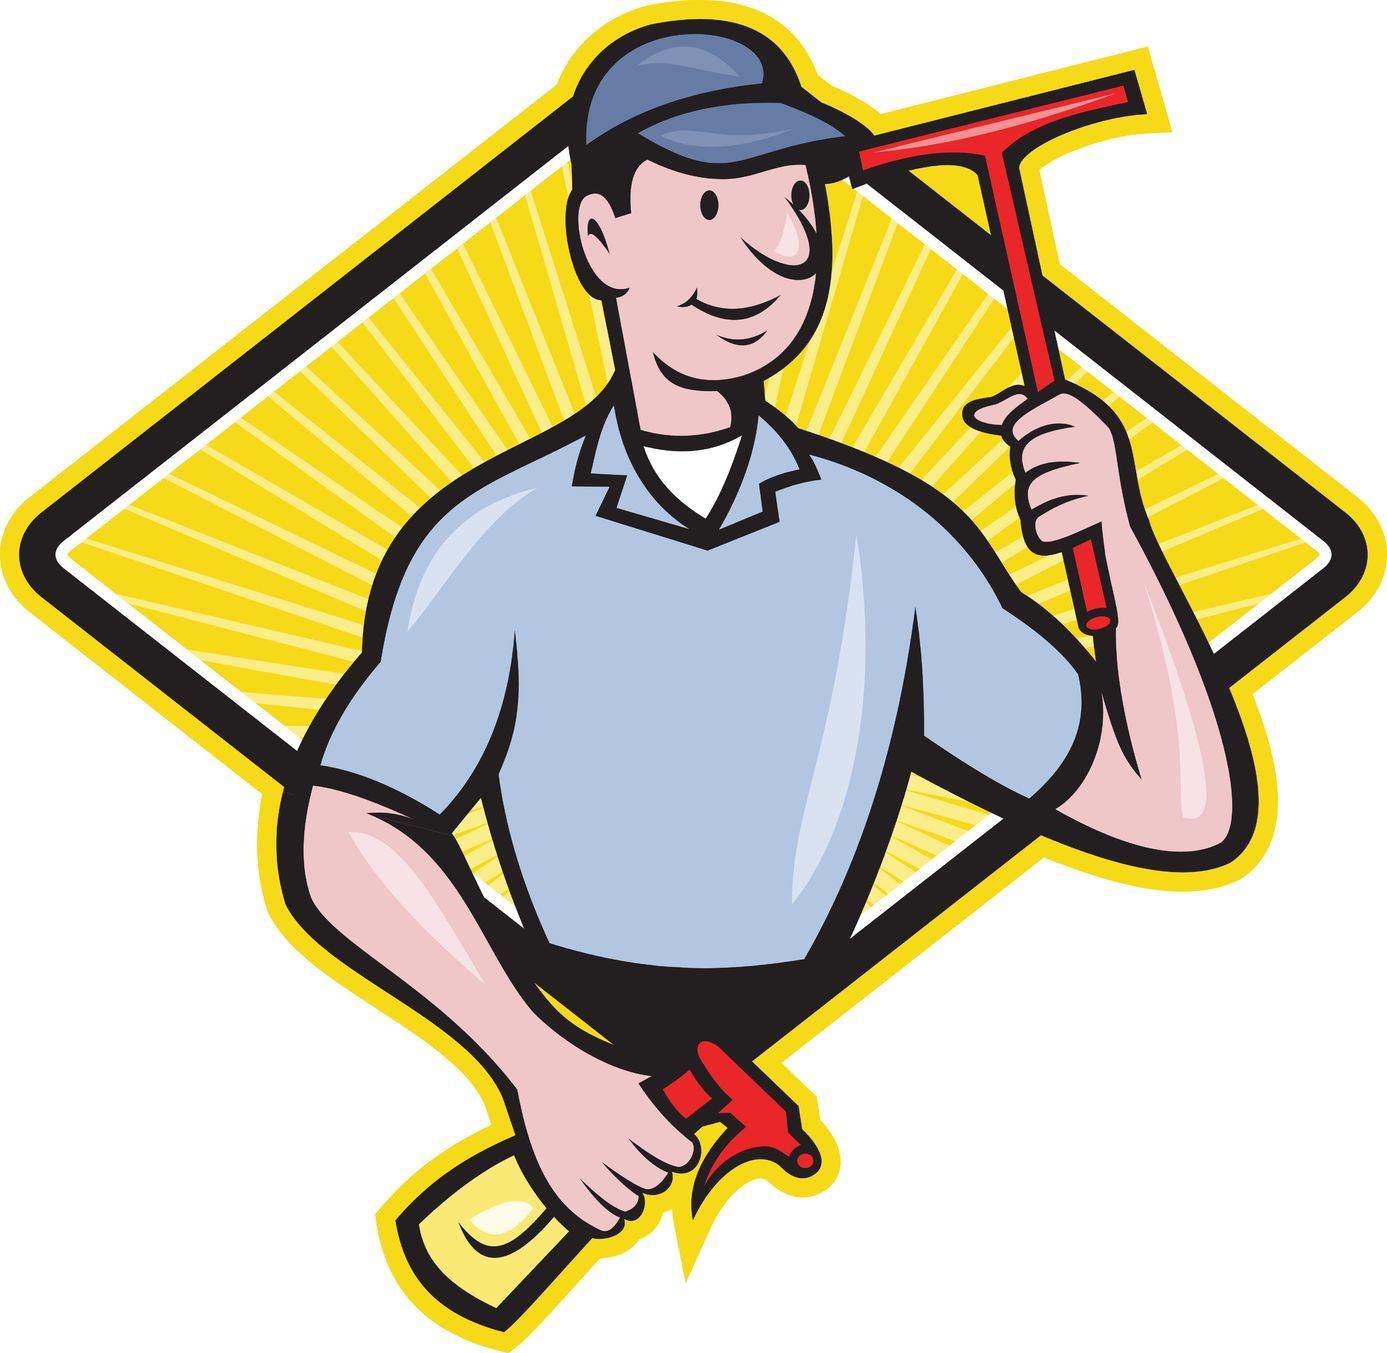 Housekeeping clipart person. Free cliparts download clip